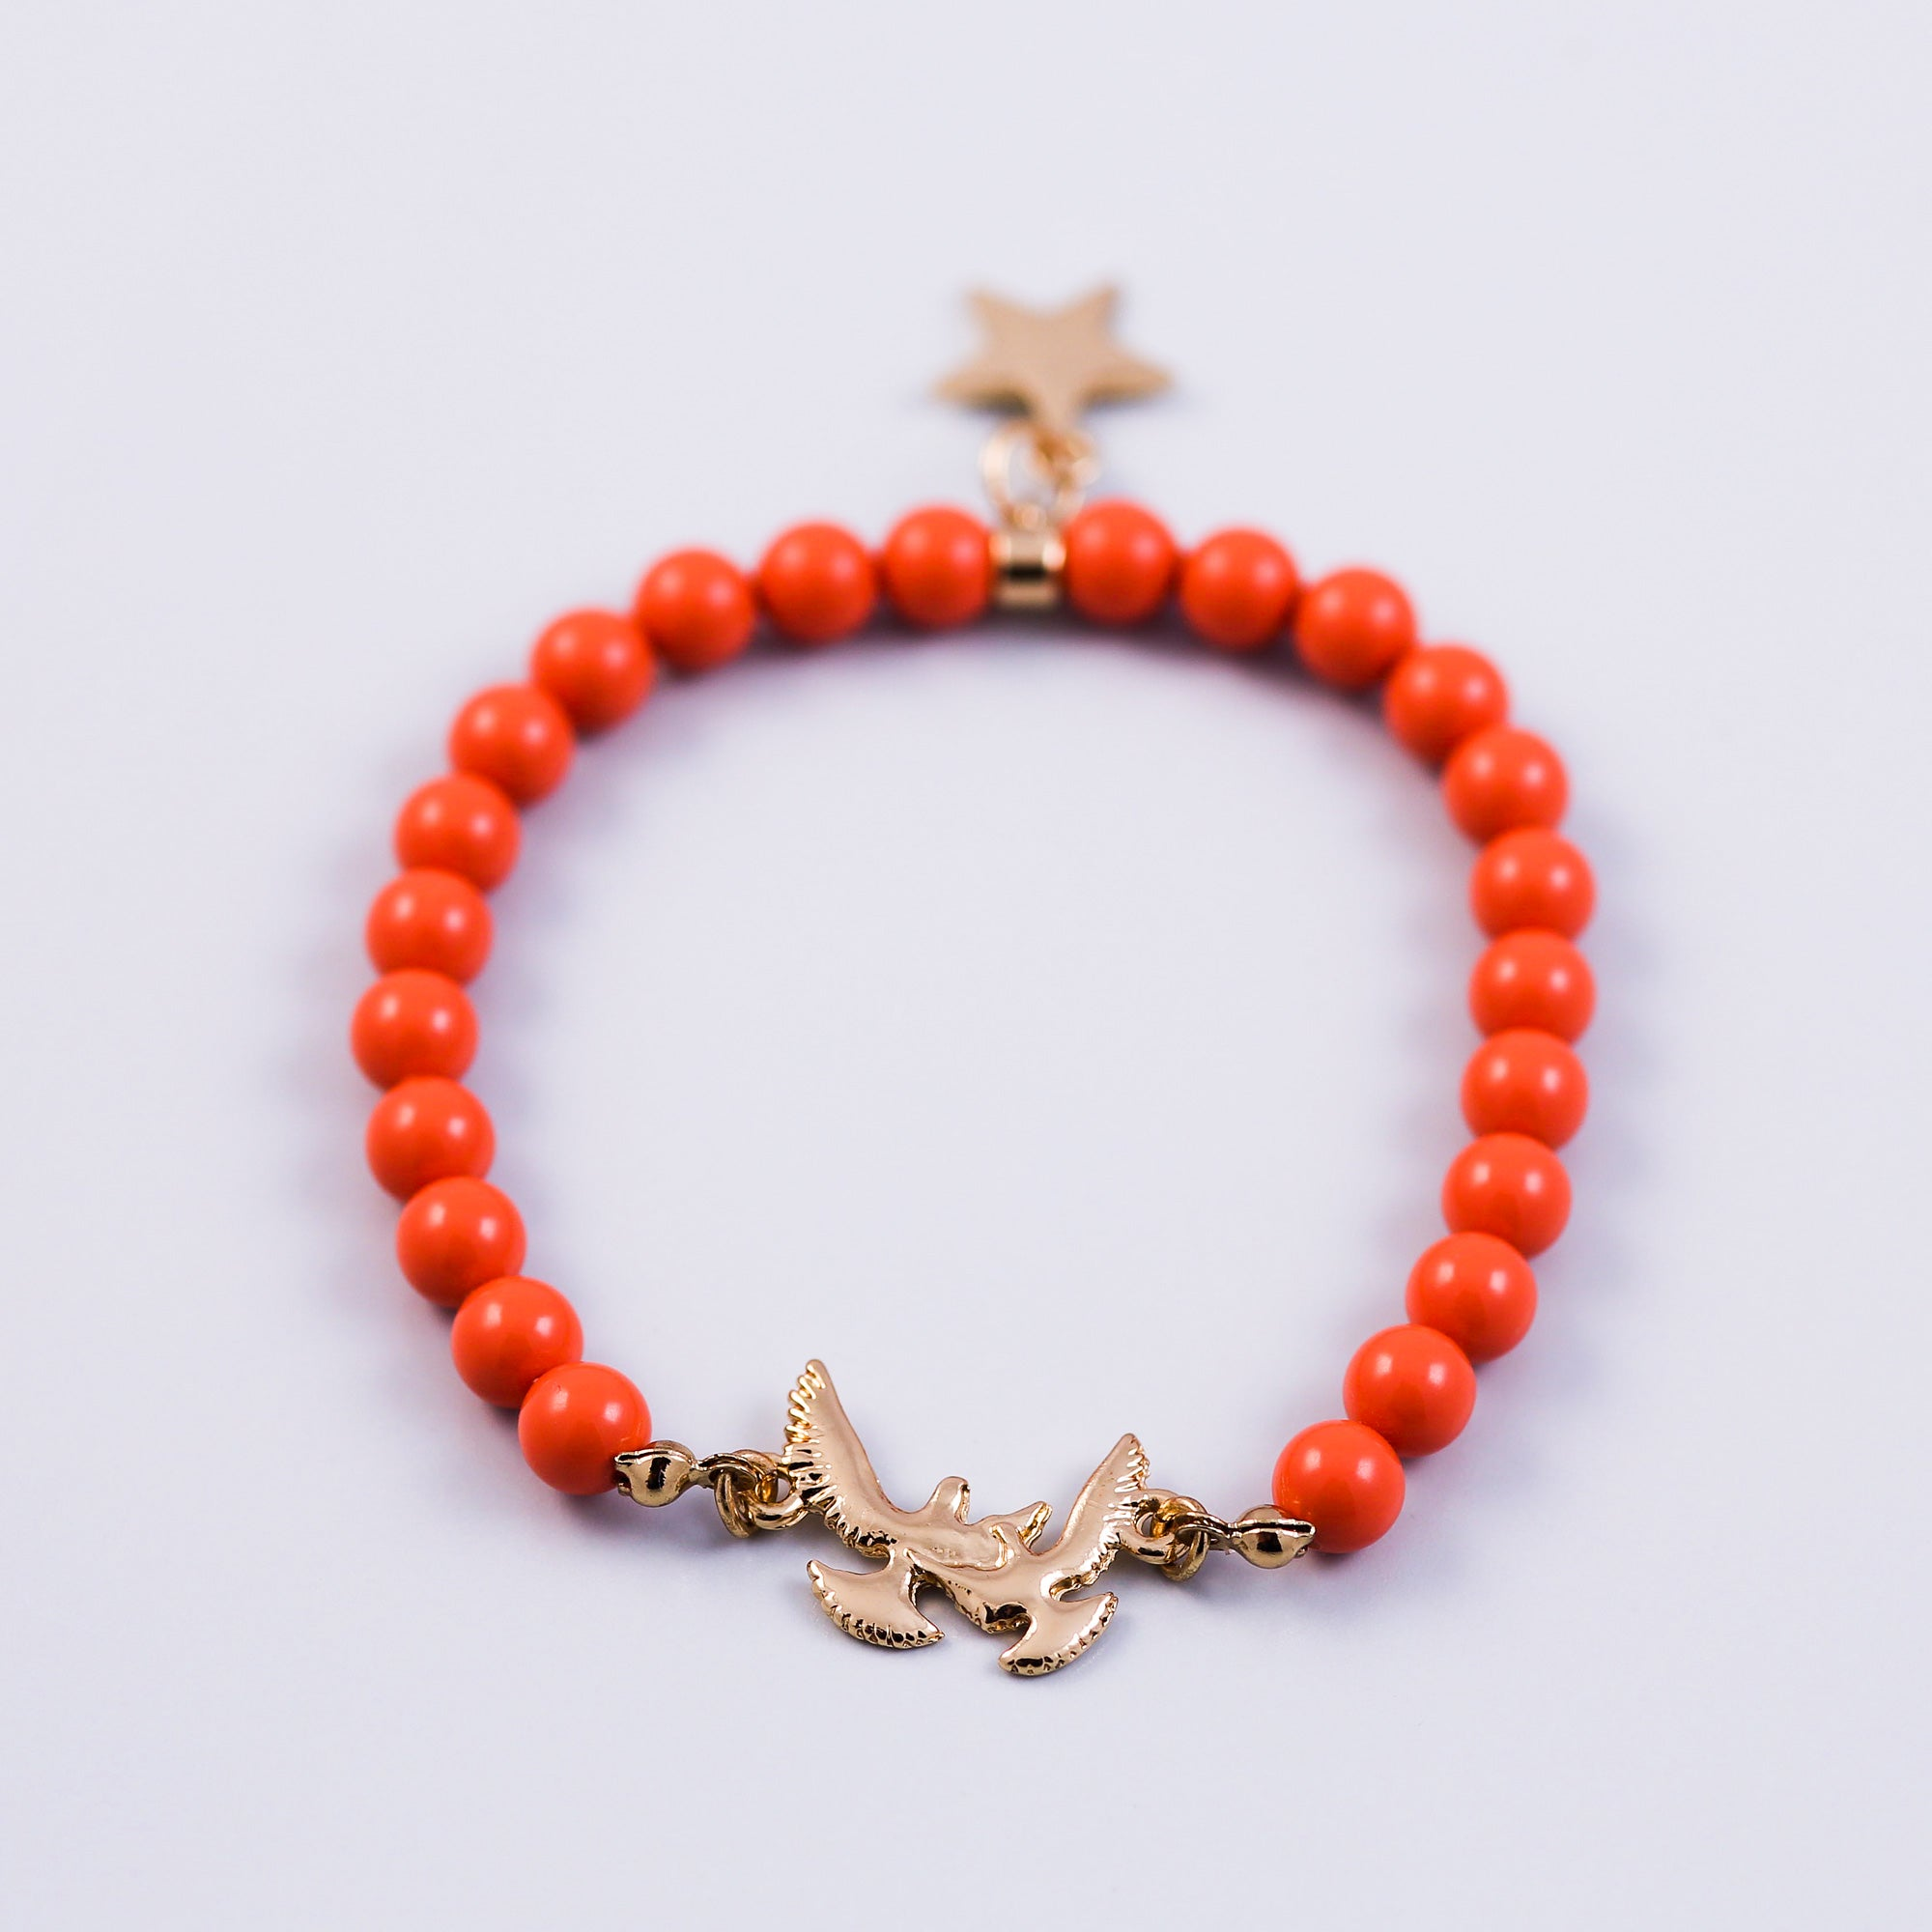 Pearl Bracelet with Bird Detail | Cute Friendship Bracelets | Friendship Jewellery | Gold & Coral